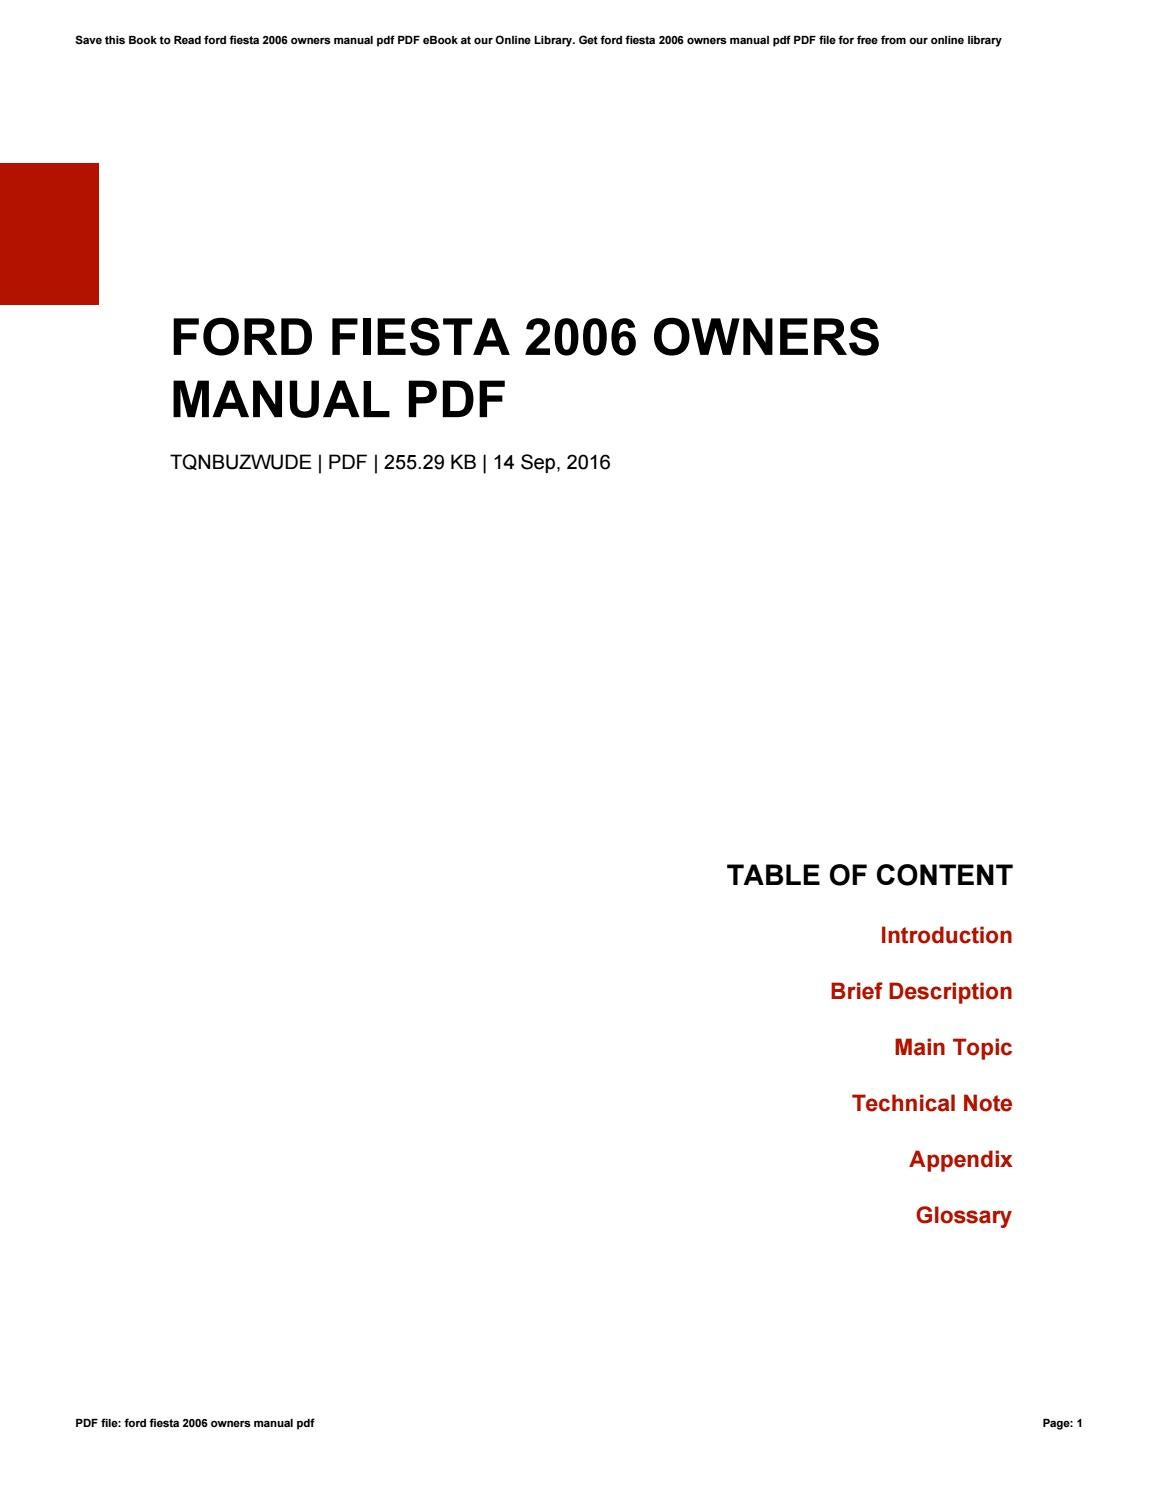 ford fiesta  owners manual    issuu